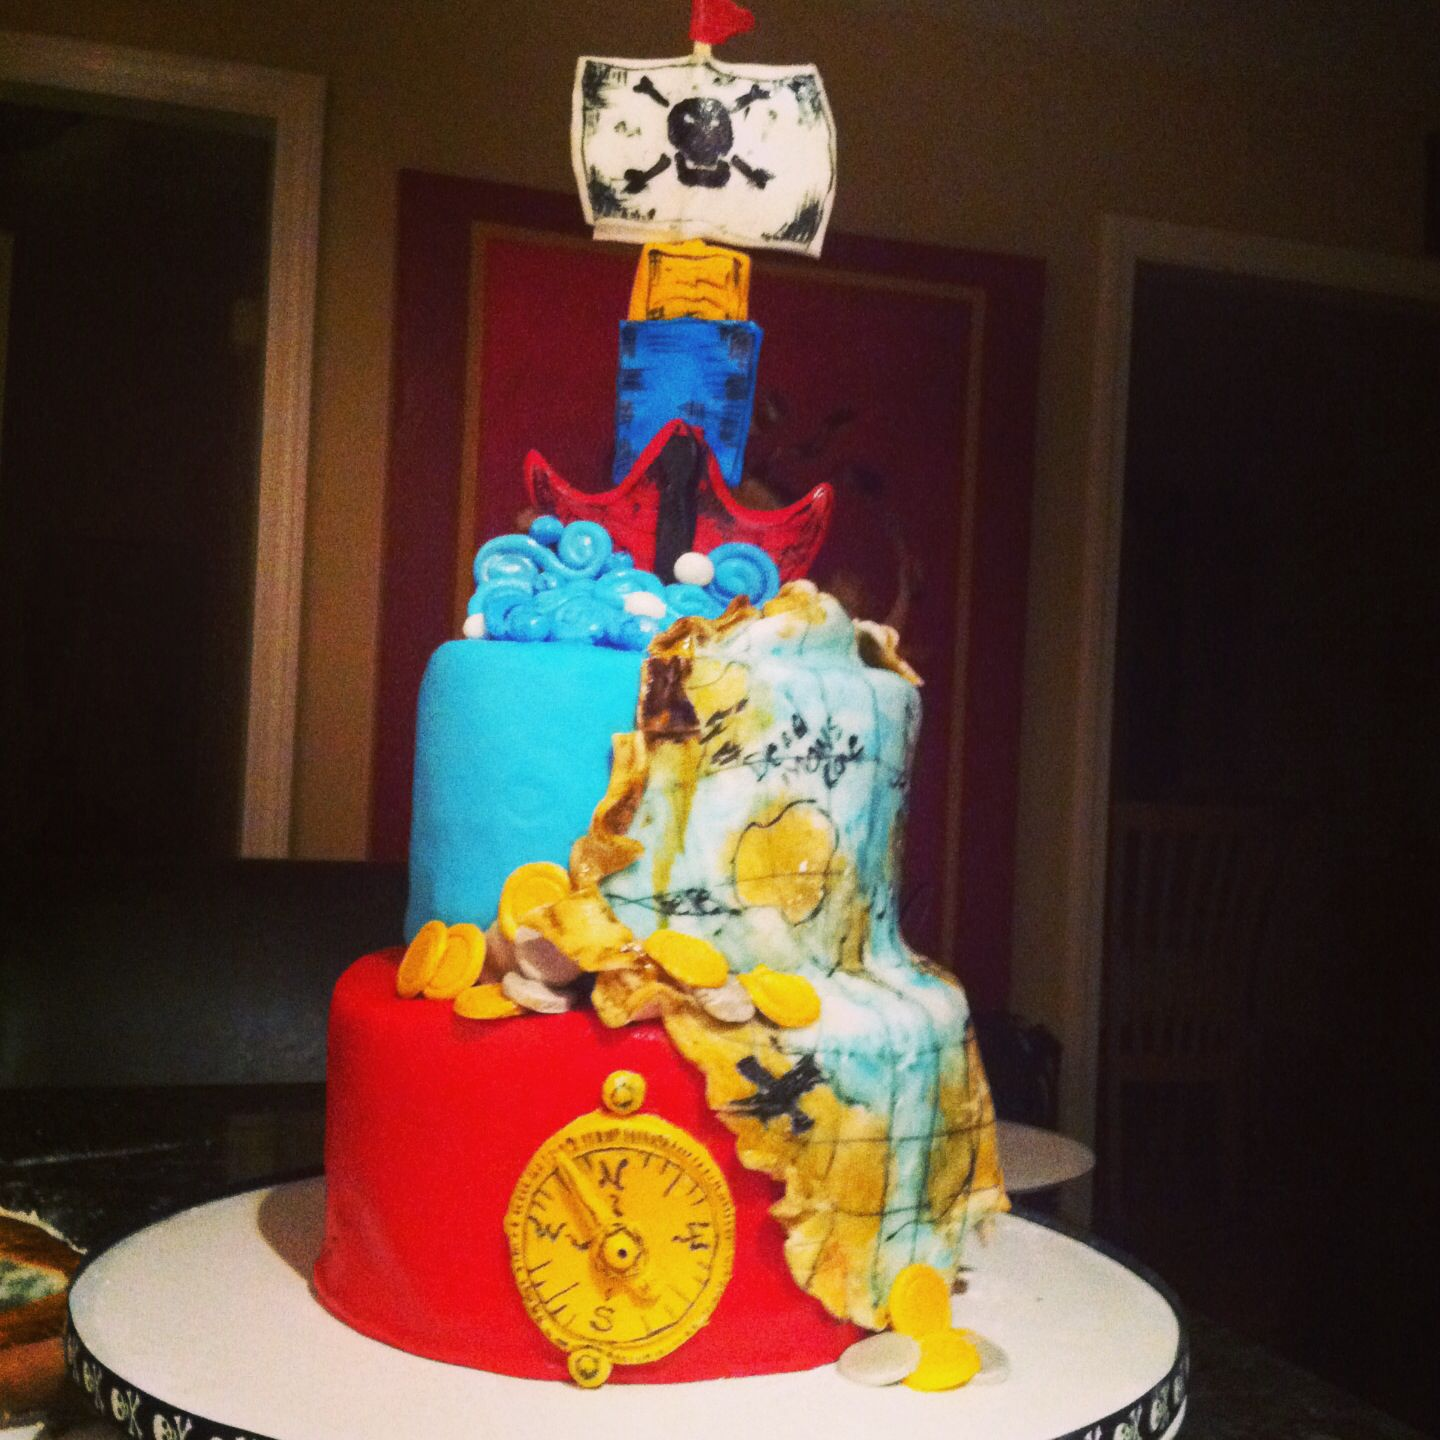 Jake and the Neverland pirate party cake | Party cakes ...